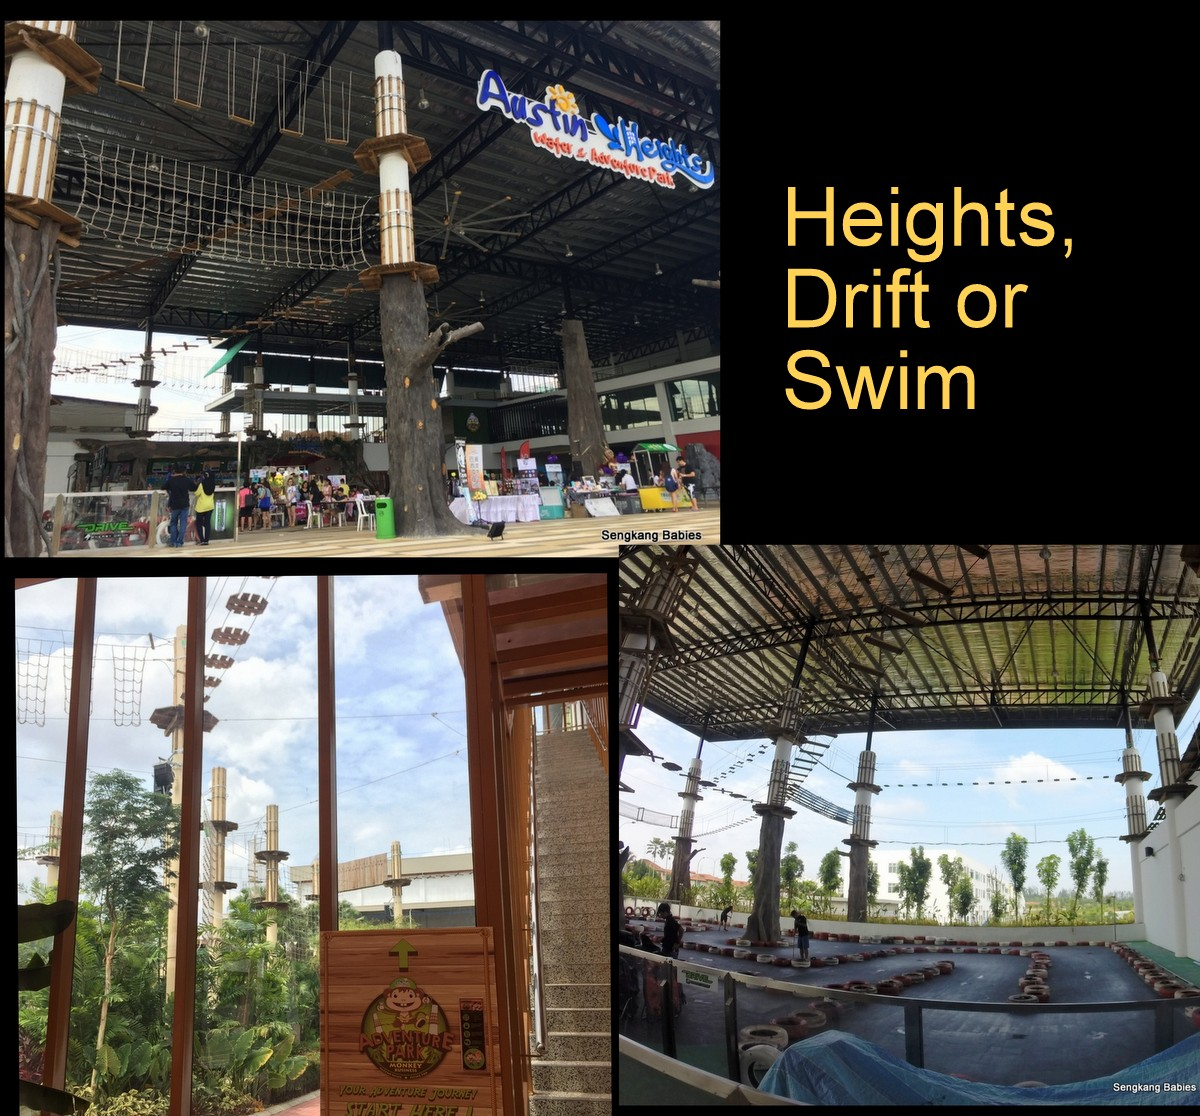 austin heights Water Adventure4